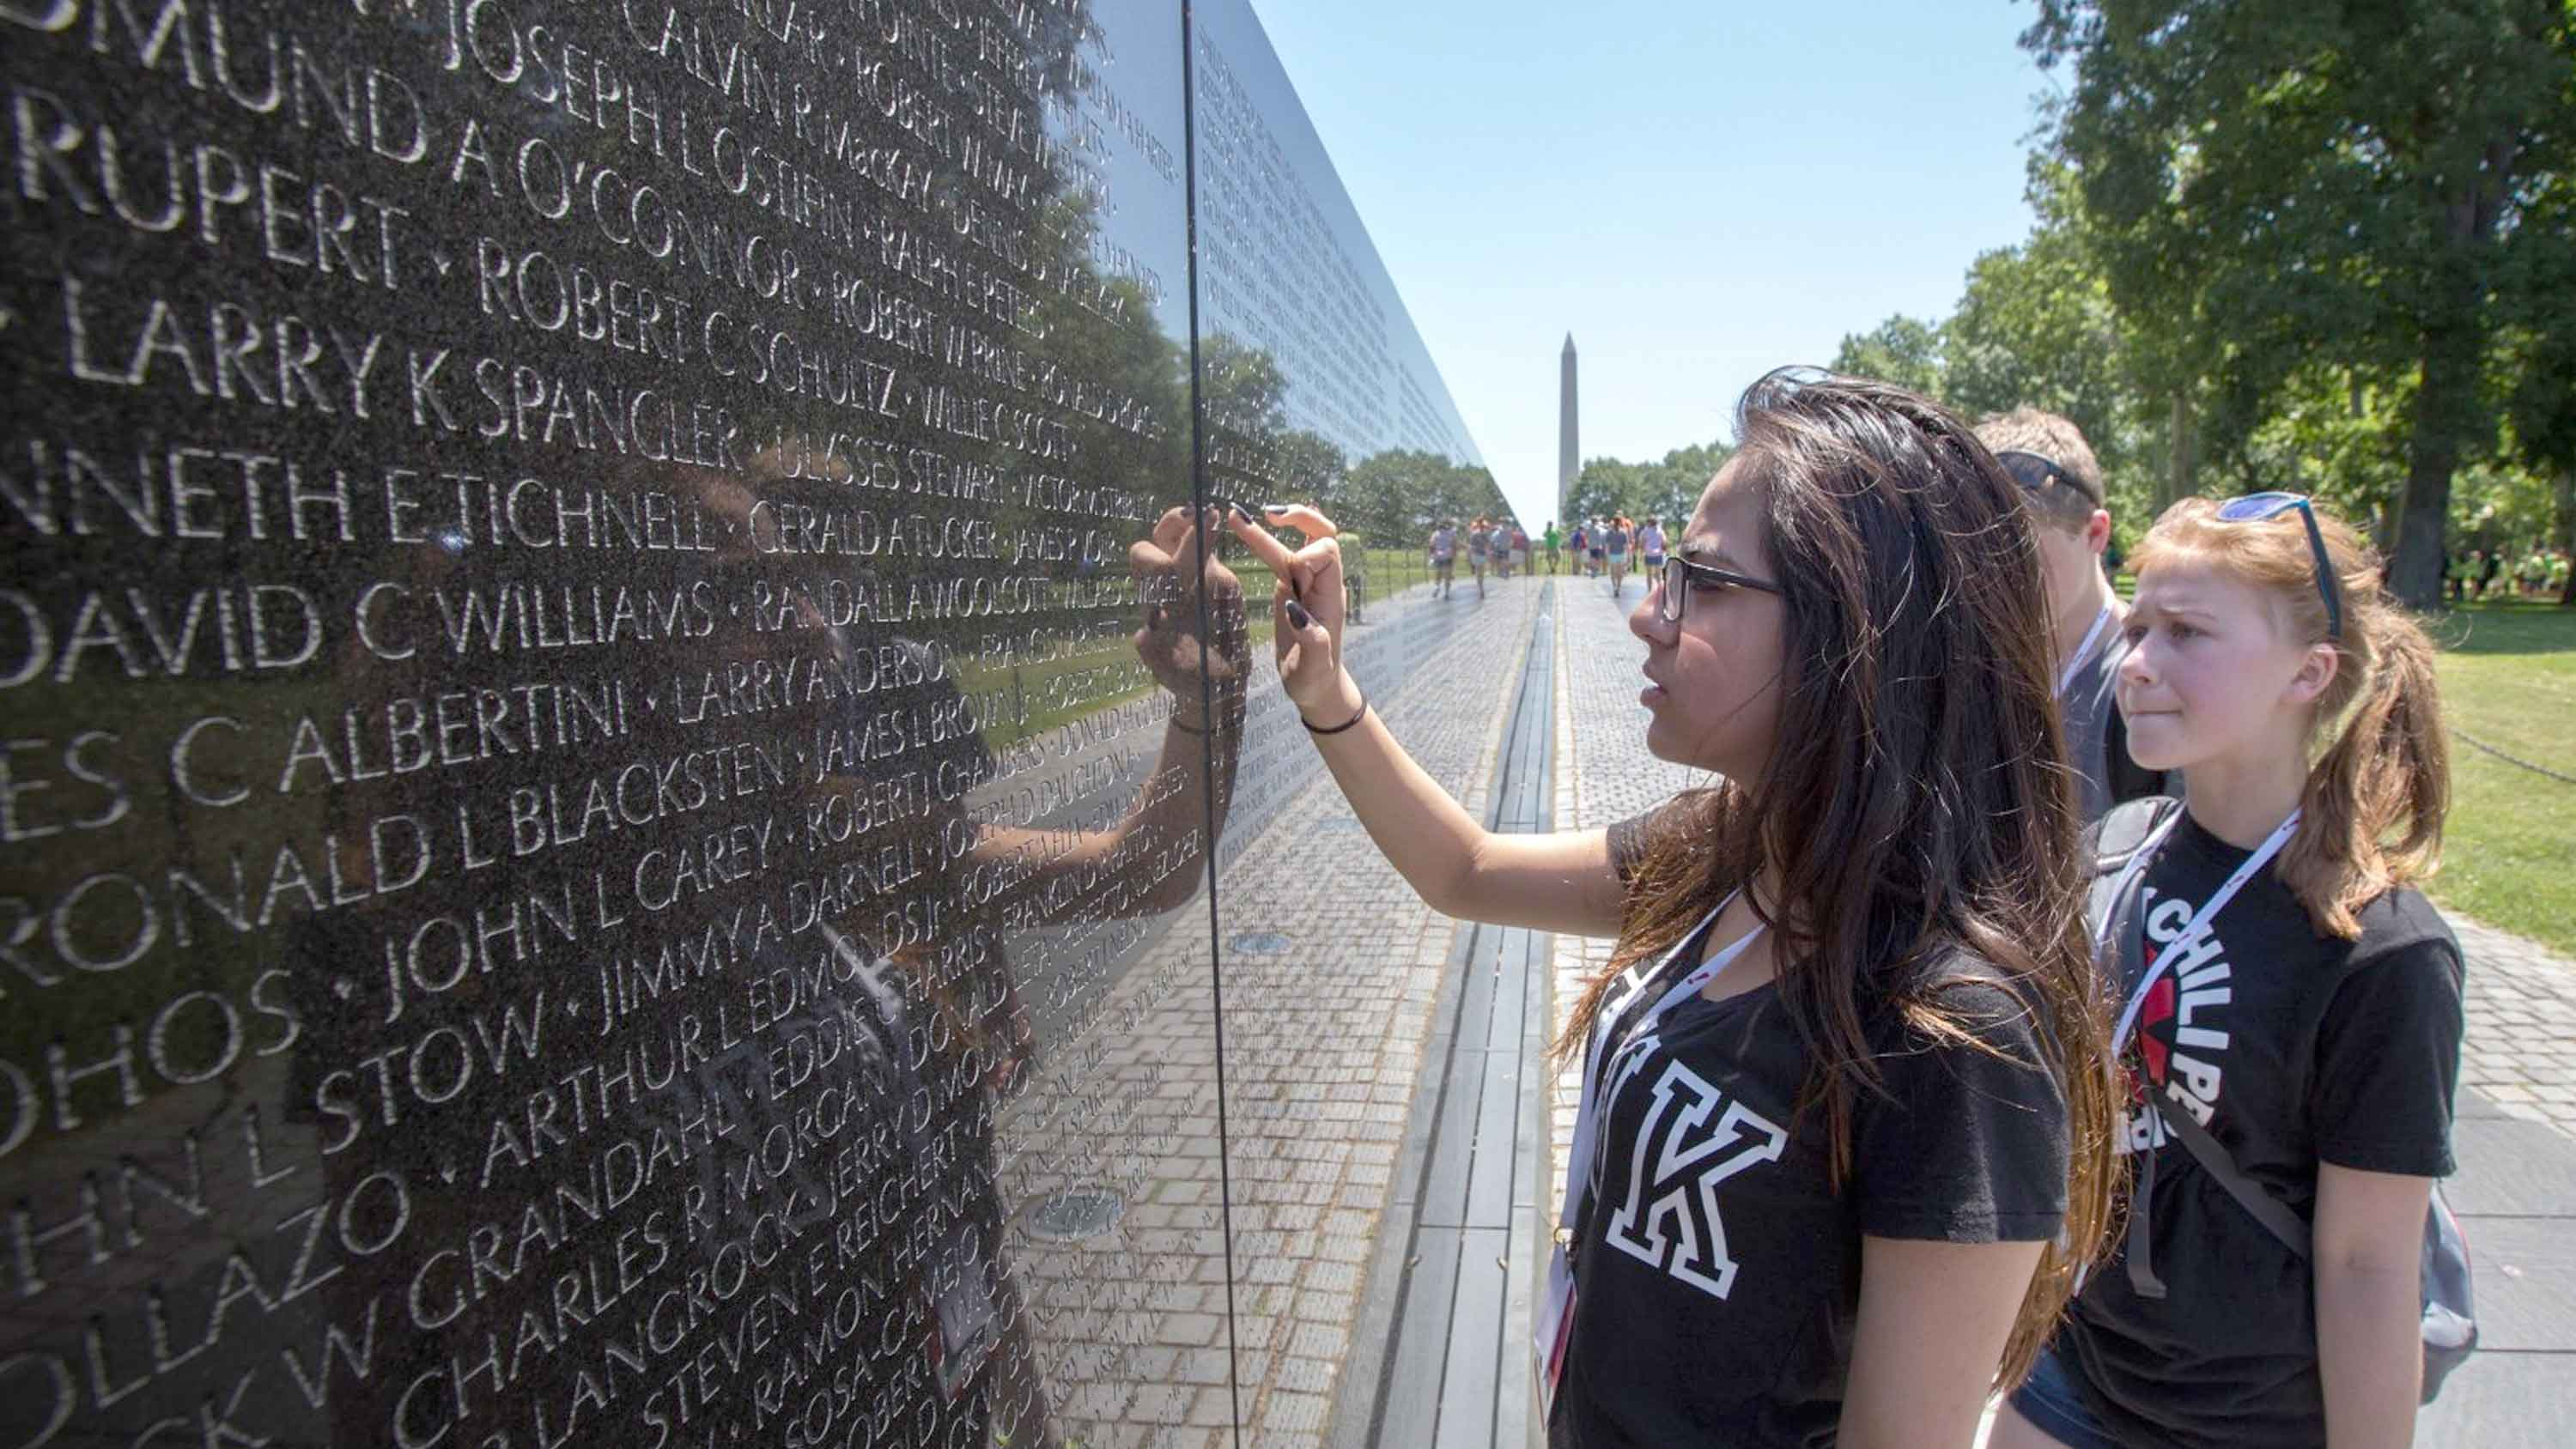 Educational Travel to Washington, D.C. where students can experience the Vietnam Memorial